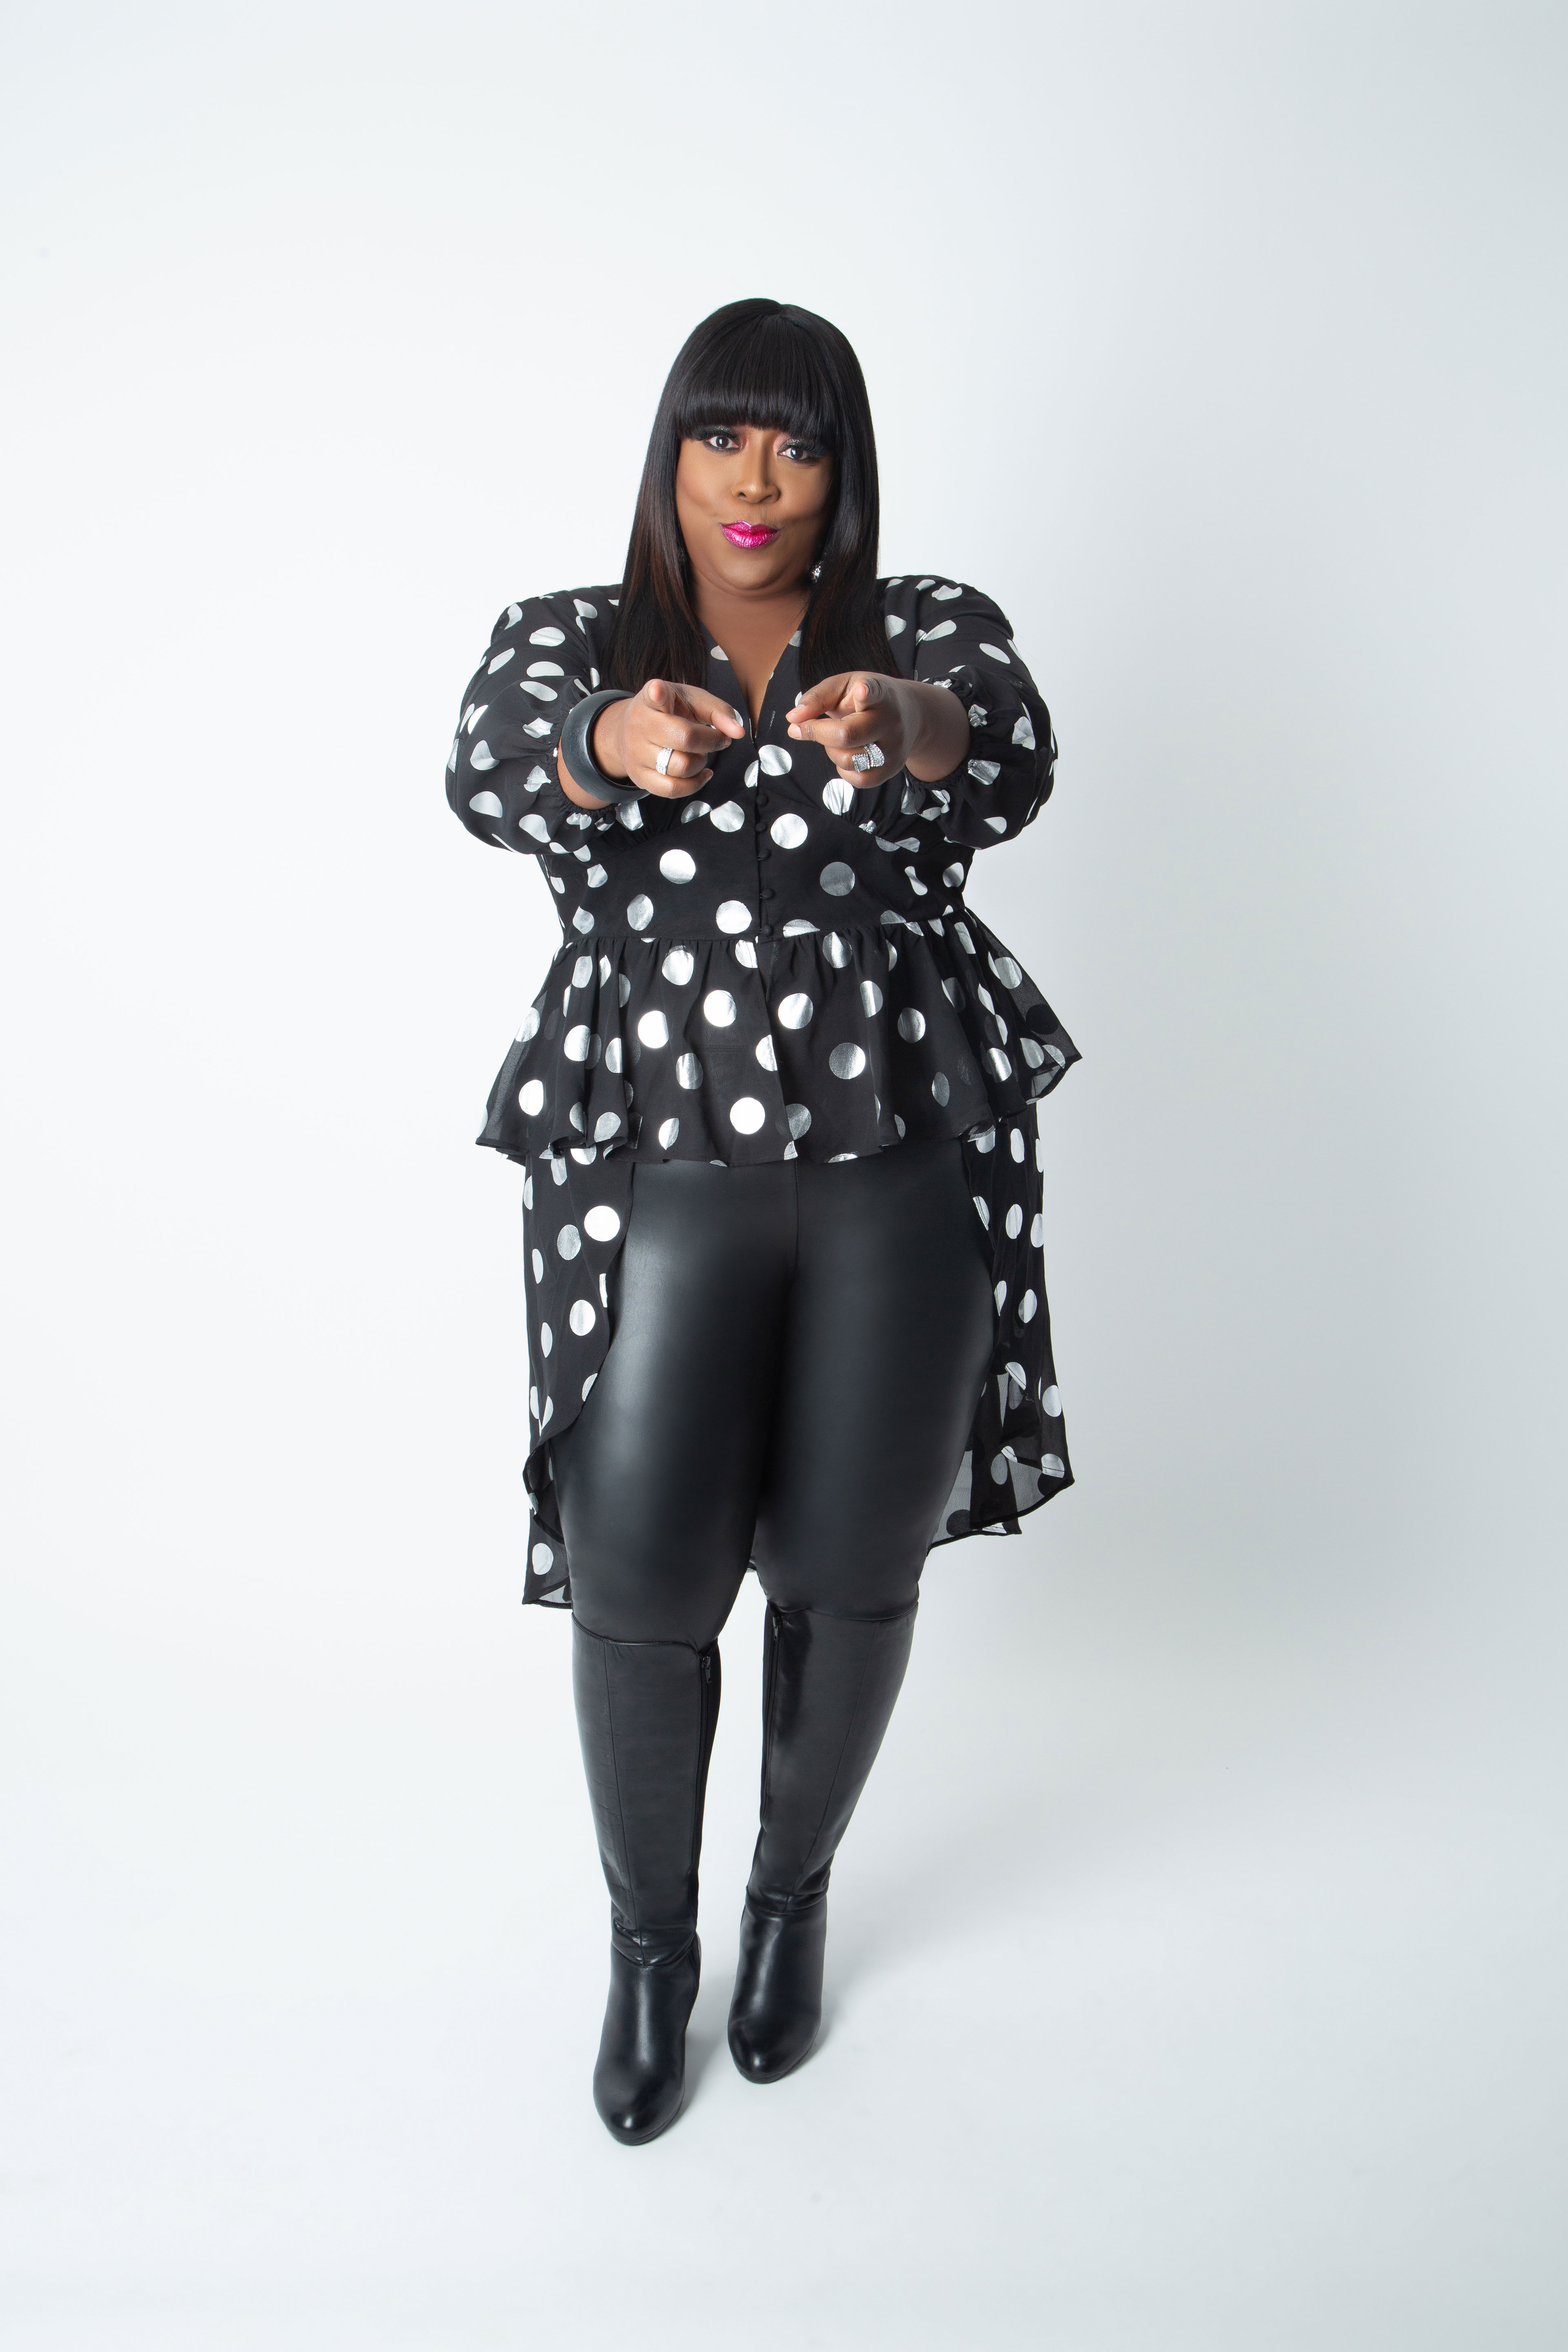 Plus size clothing collection - Loni Love